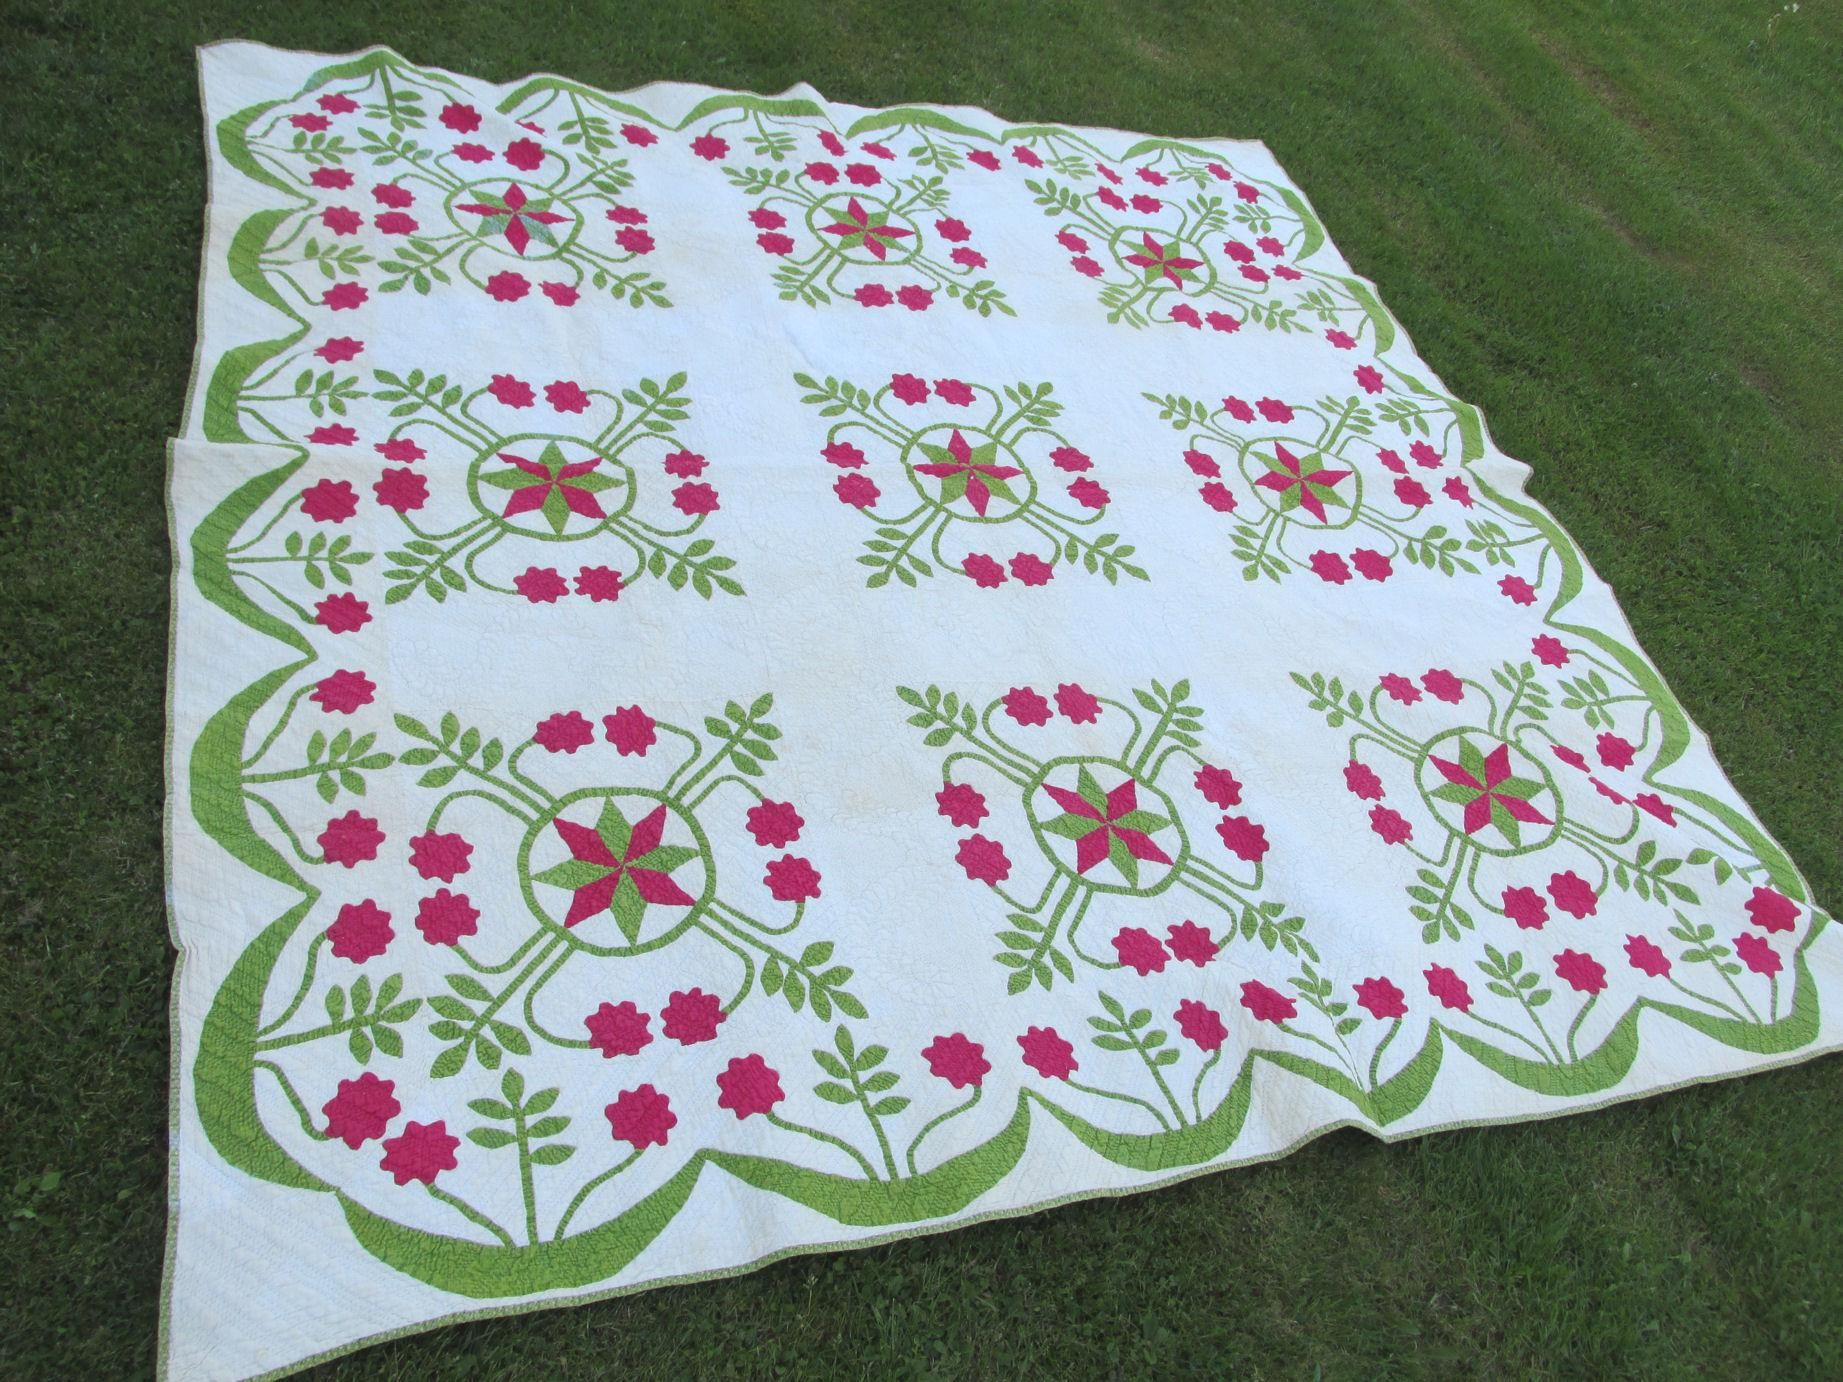 Craft chinese casual country style flower pattern embroidery